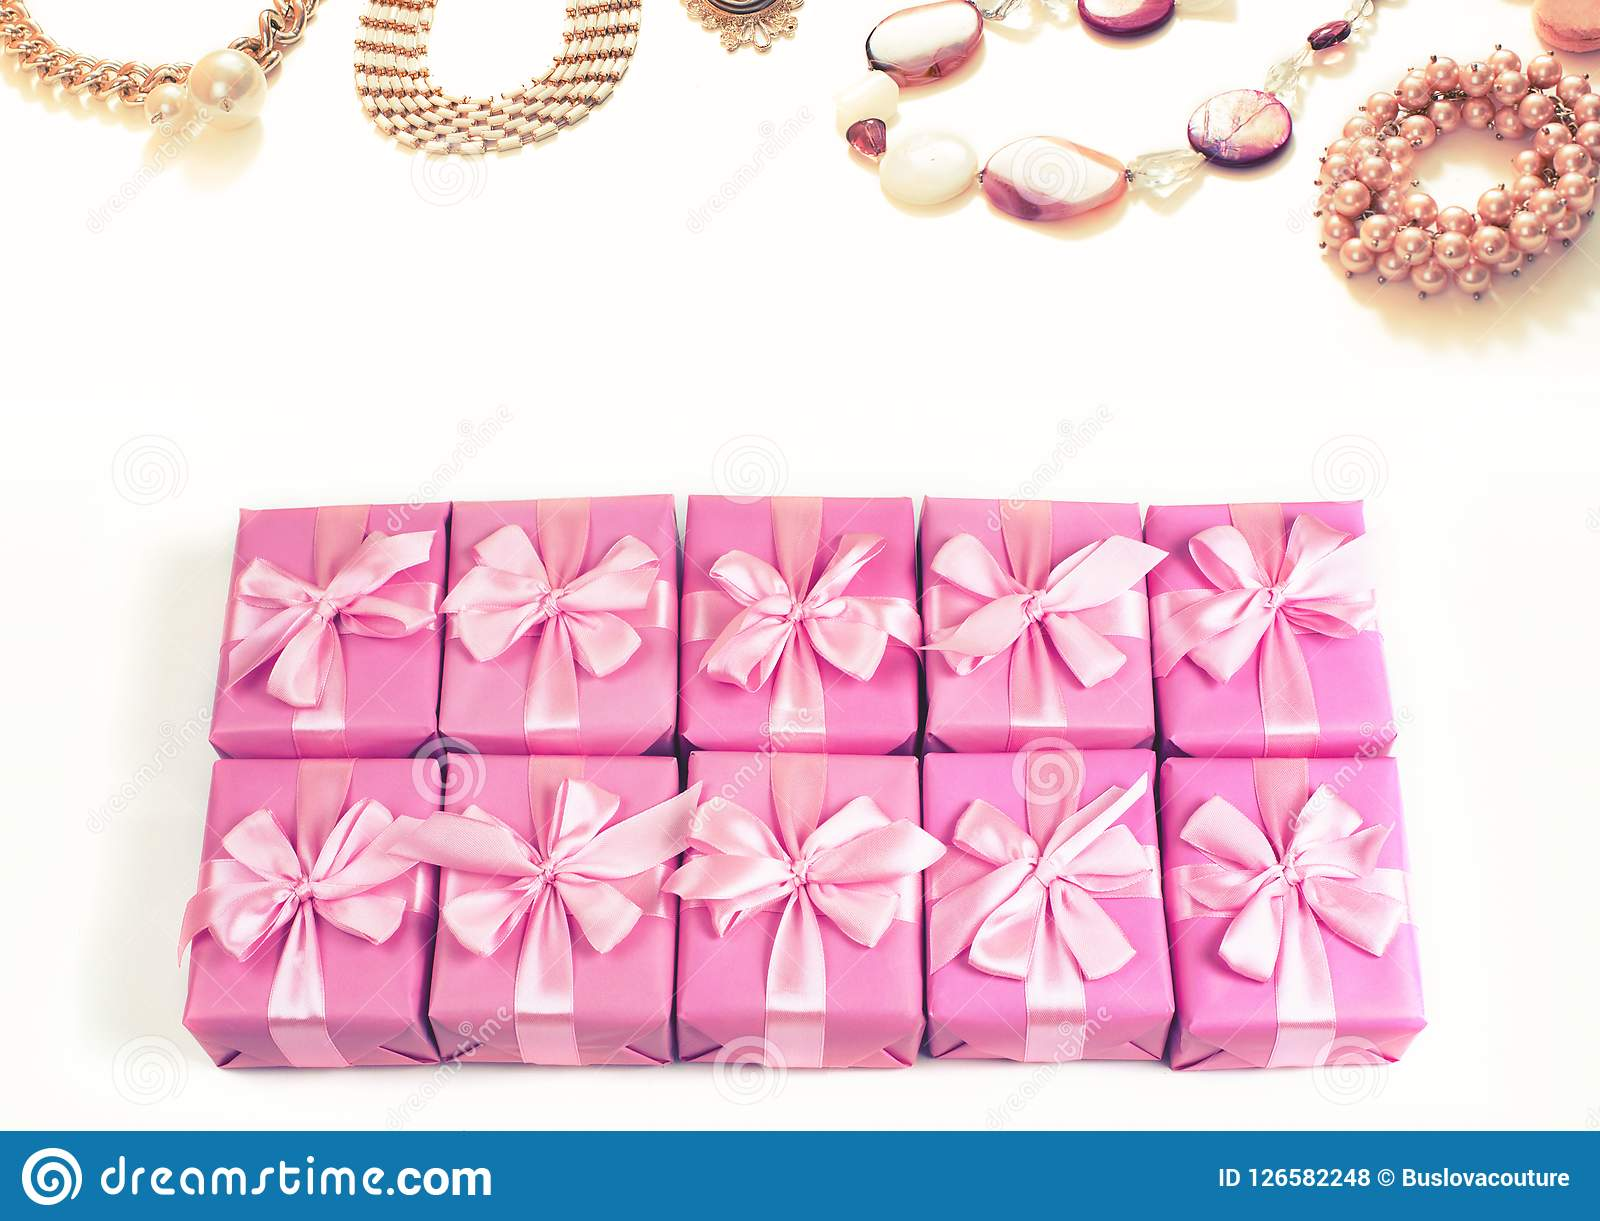 Rows of boxes with gifts decoration ribbon satin bow pink fashion accessories for women jewelry pearl necklace bracelet A top view